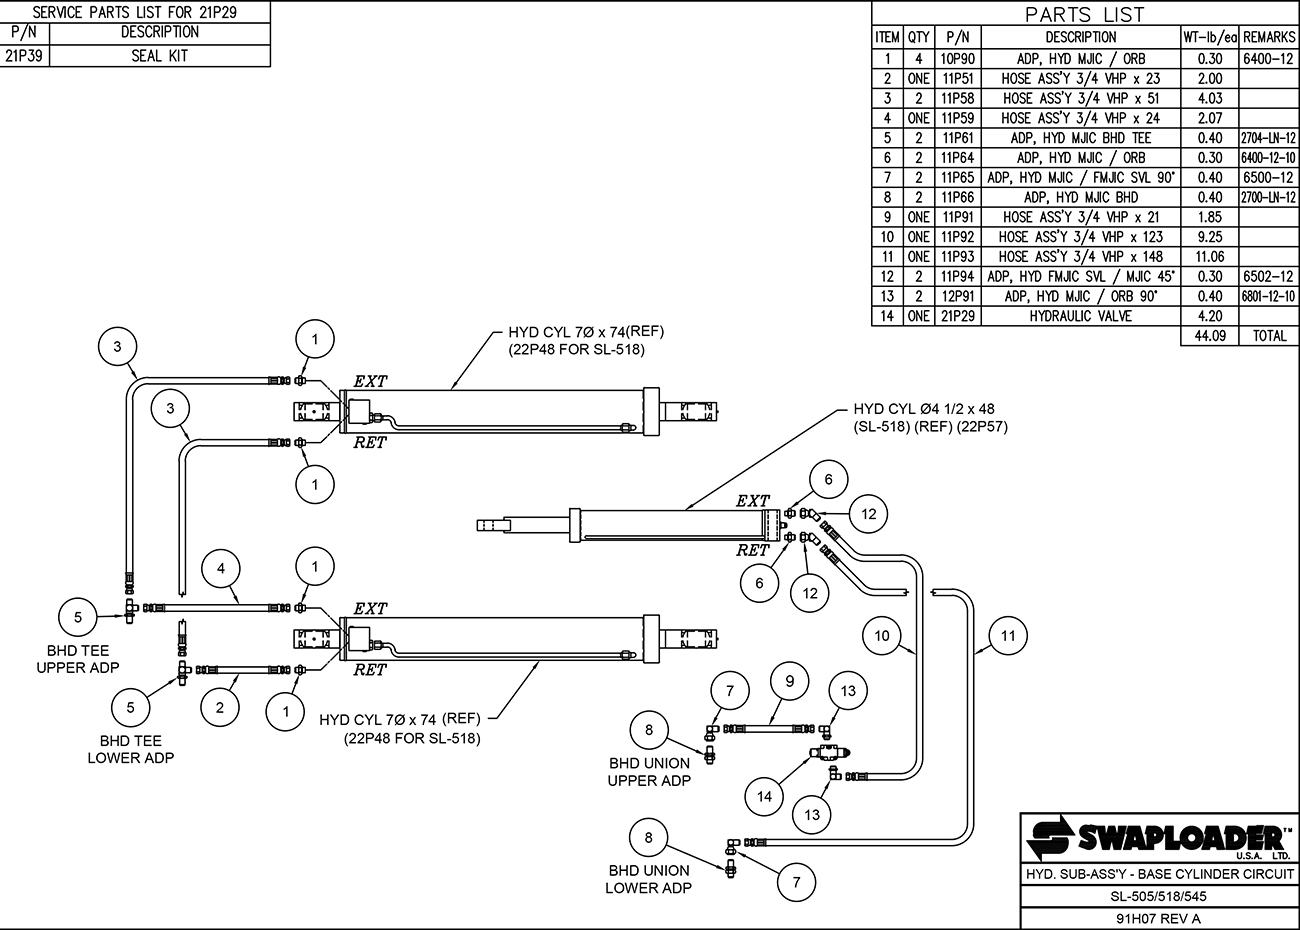 hight resolution of sl 518 hydraulic sub assembly base cylinder circuit diagram